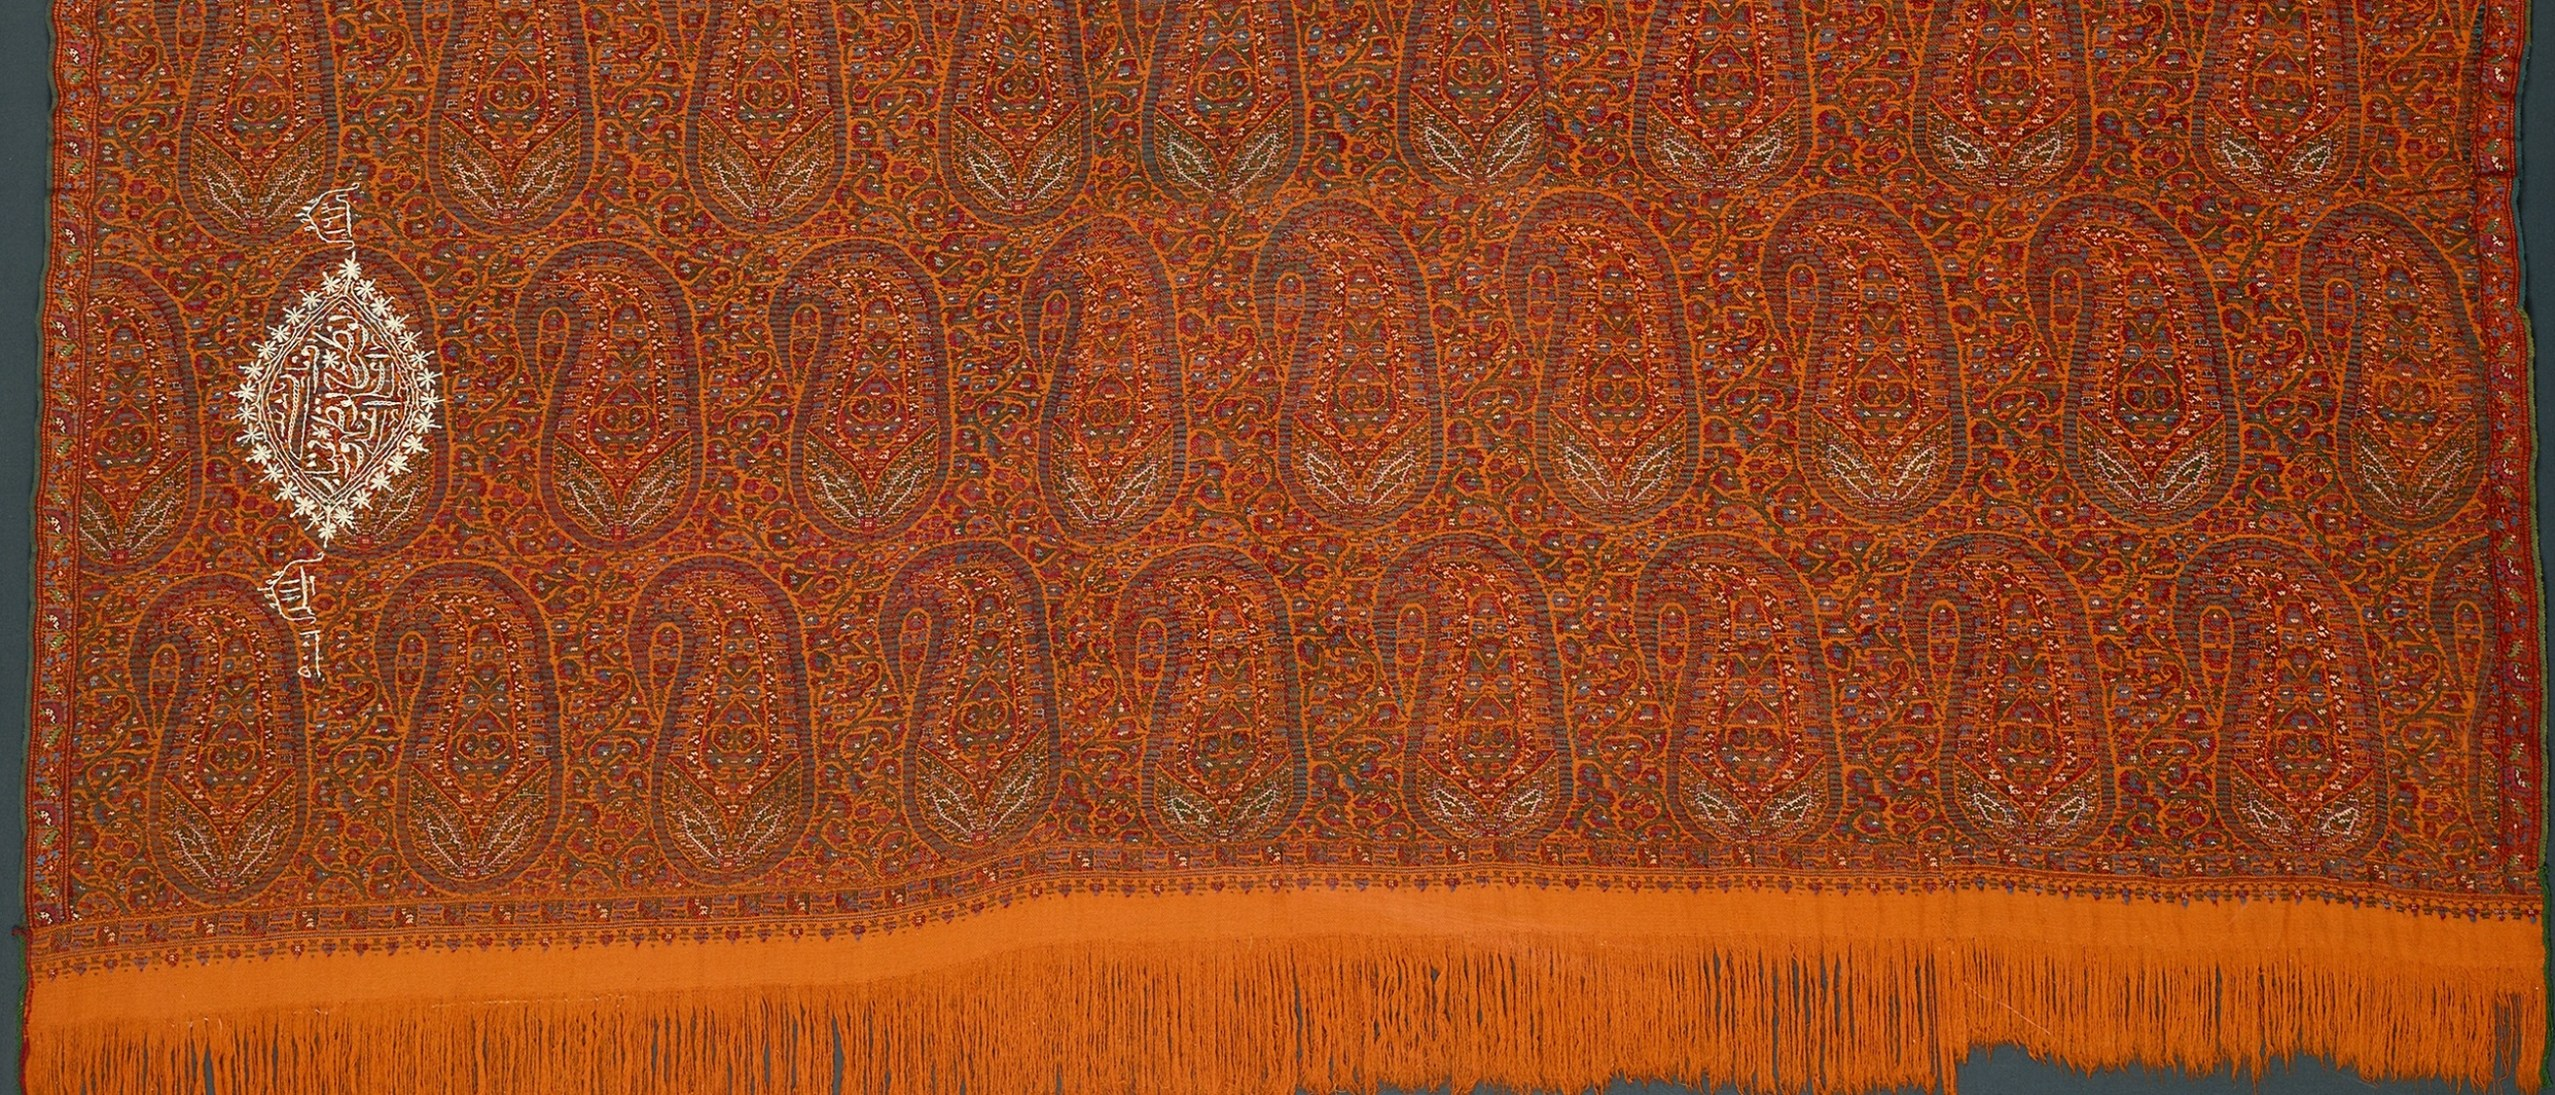 Detail photo of Textile (termeh cloth); Iran, probably Yazd, ca. 1875–1900; Wool and silk; 246 × 117 cm (96 7/8 × 46 1/16 in); Gift of Nader Ahari in memory of Nahid Ahari; Arthur M. Sackler Gallery S2017.14